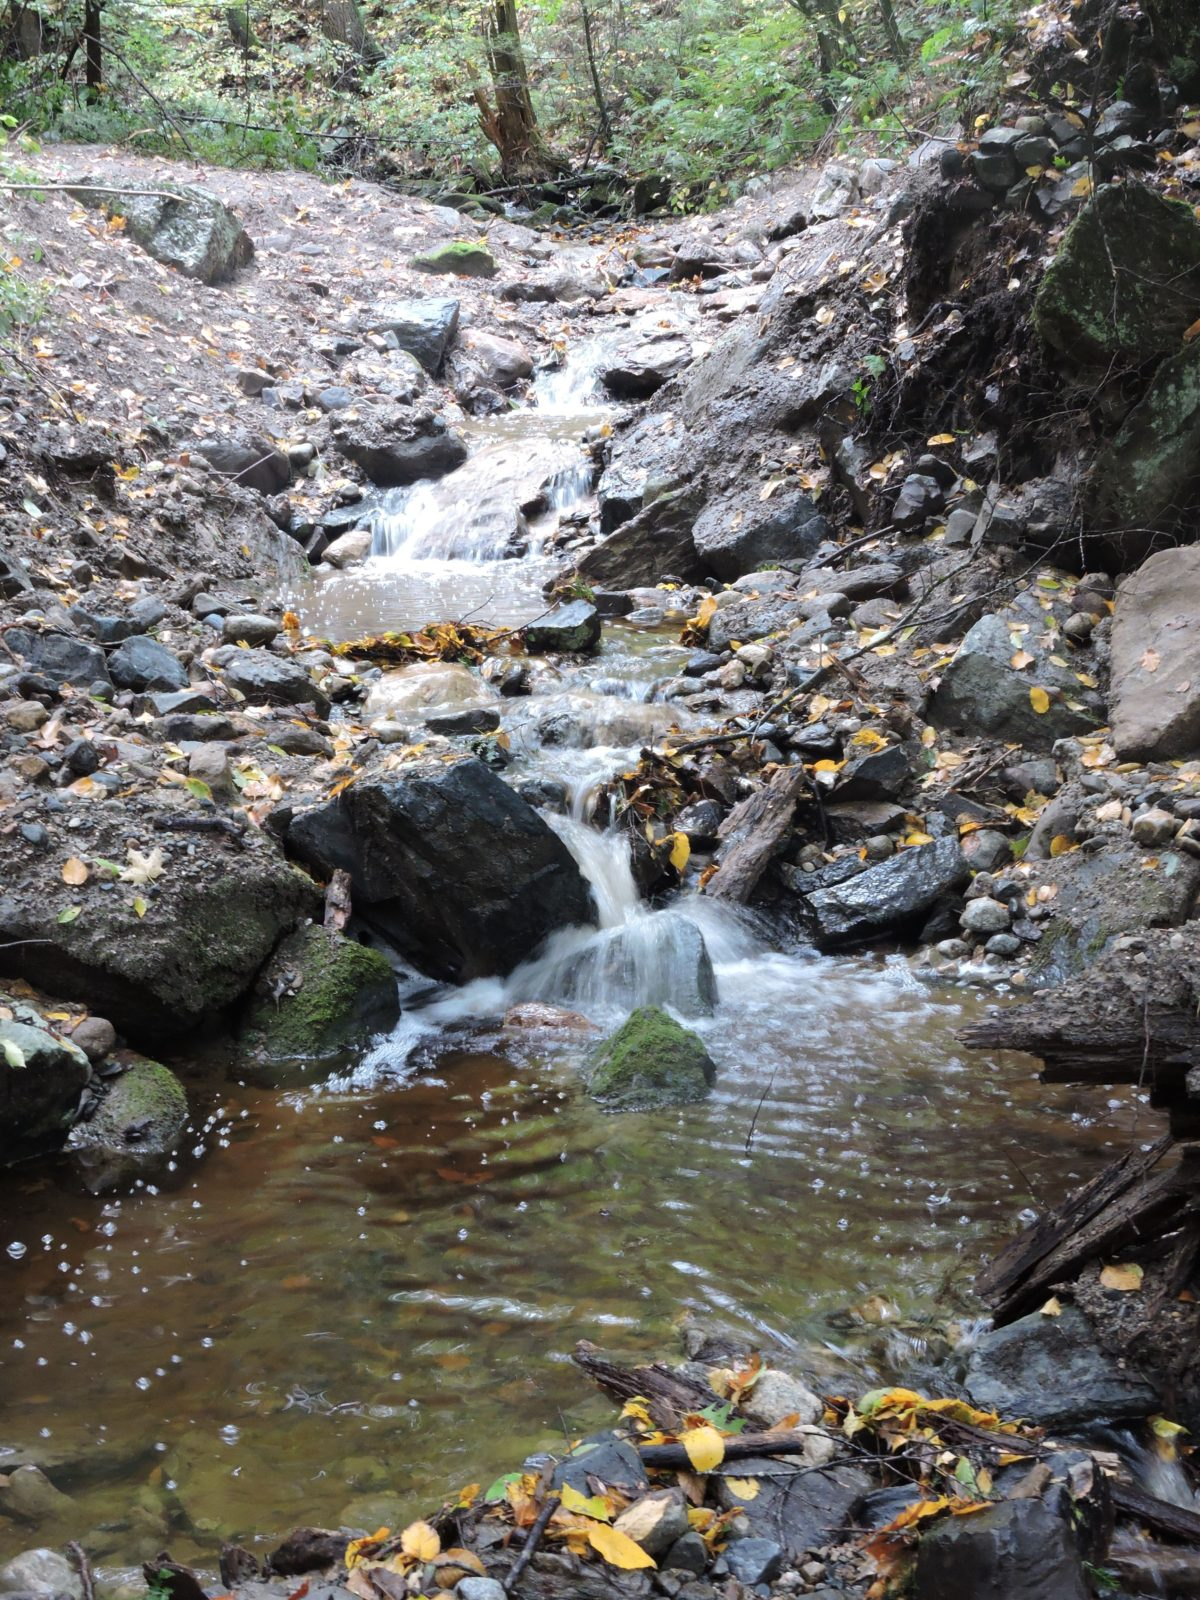 Culvert Removed for Native Brook Trout in Connecticut